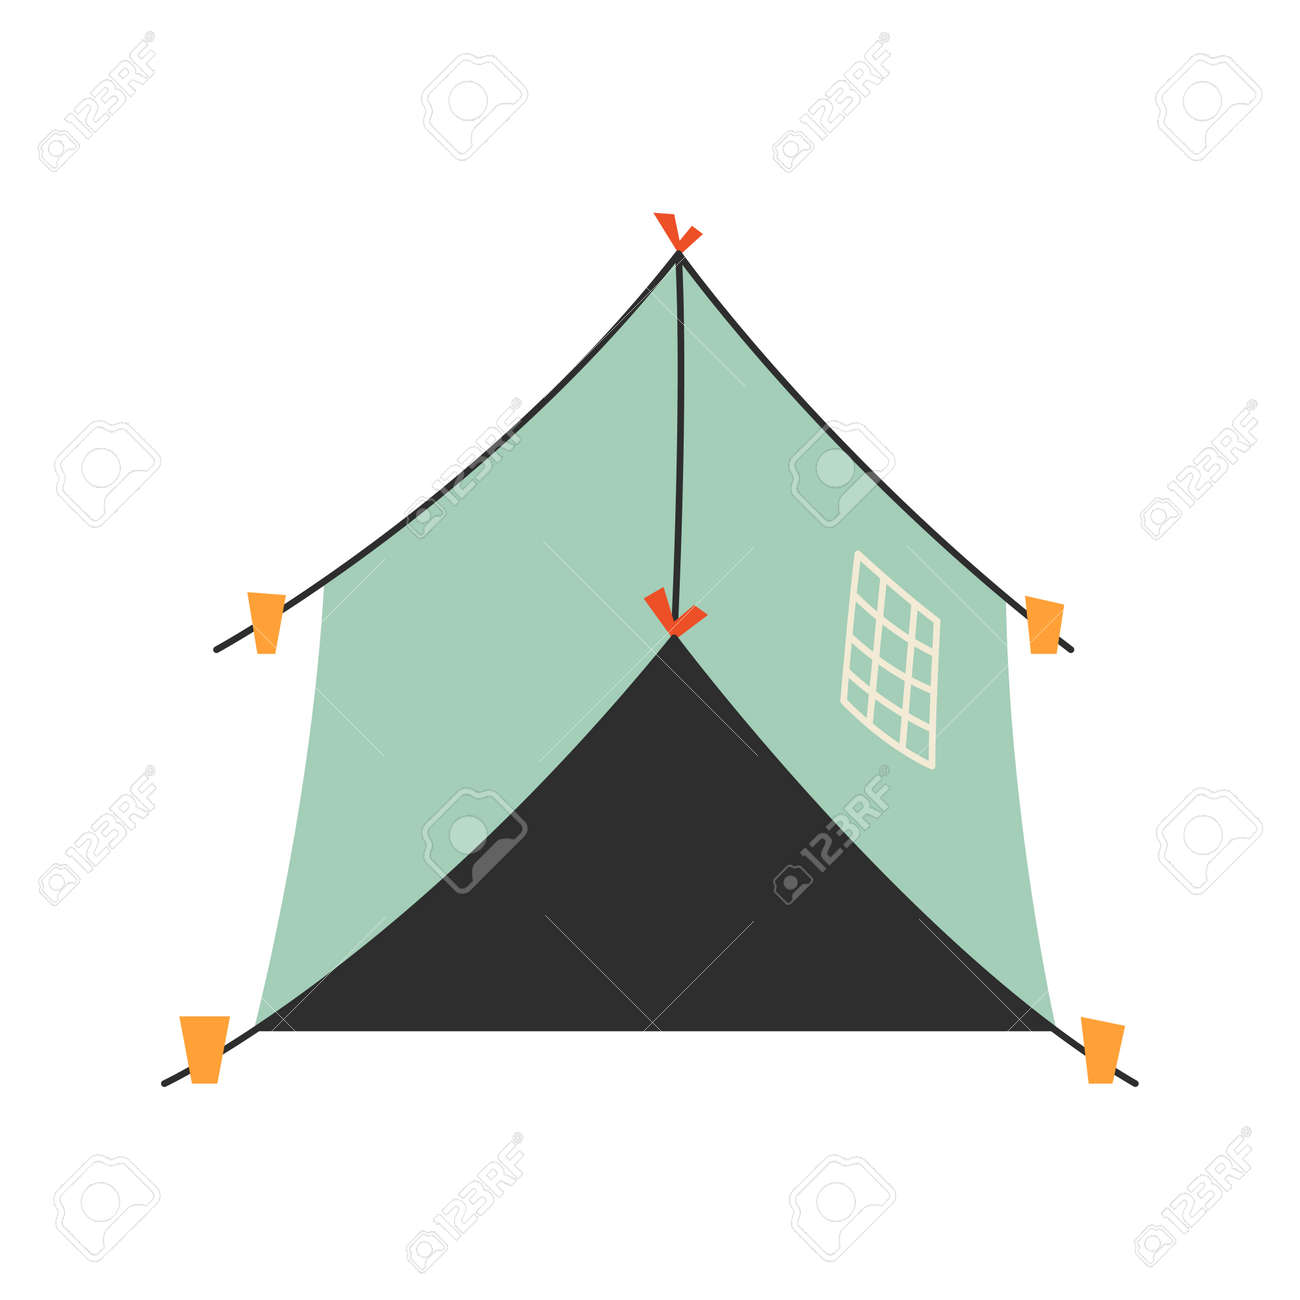 The only canvas tent on a white background. Vector illustration. - 169771937